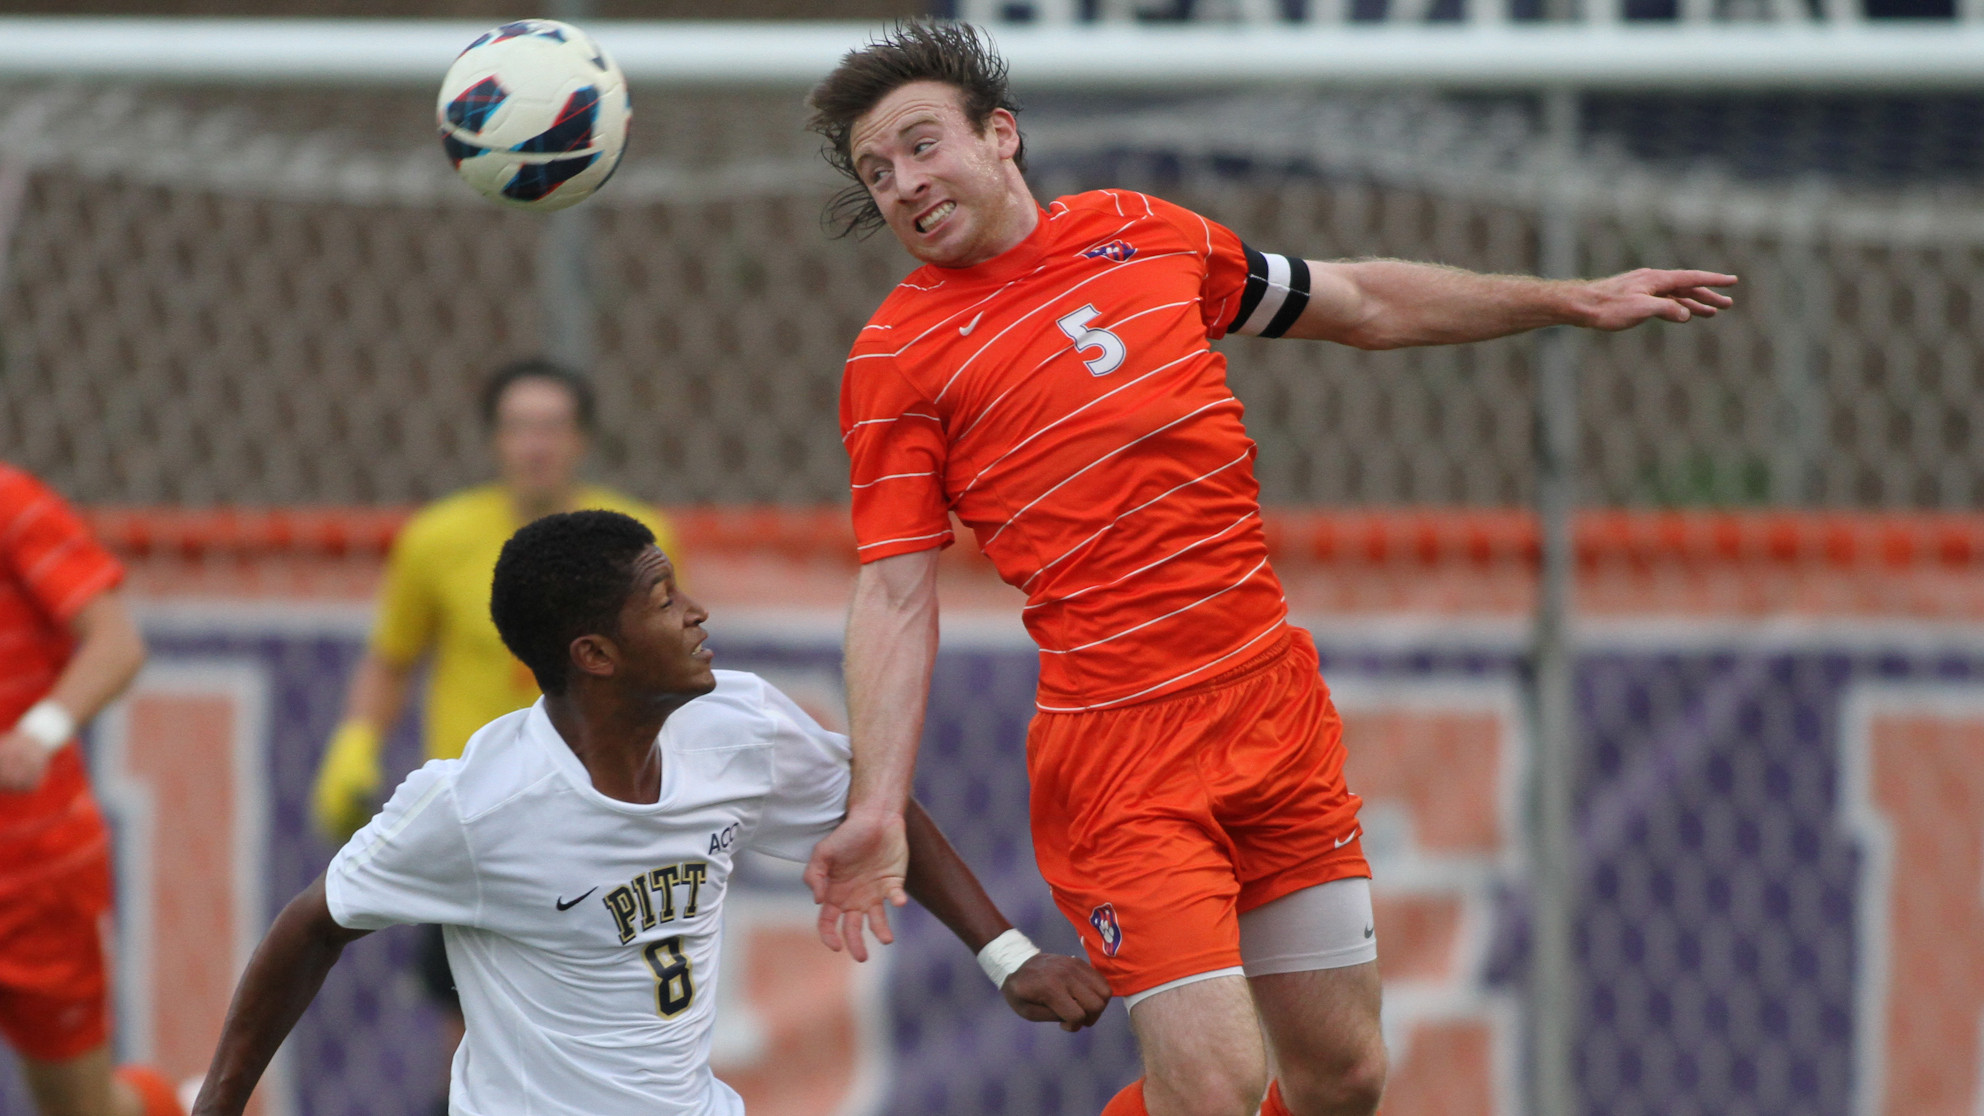 McNamara Drafted by Chivas USA in MLS Draft